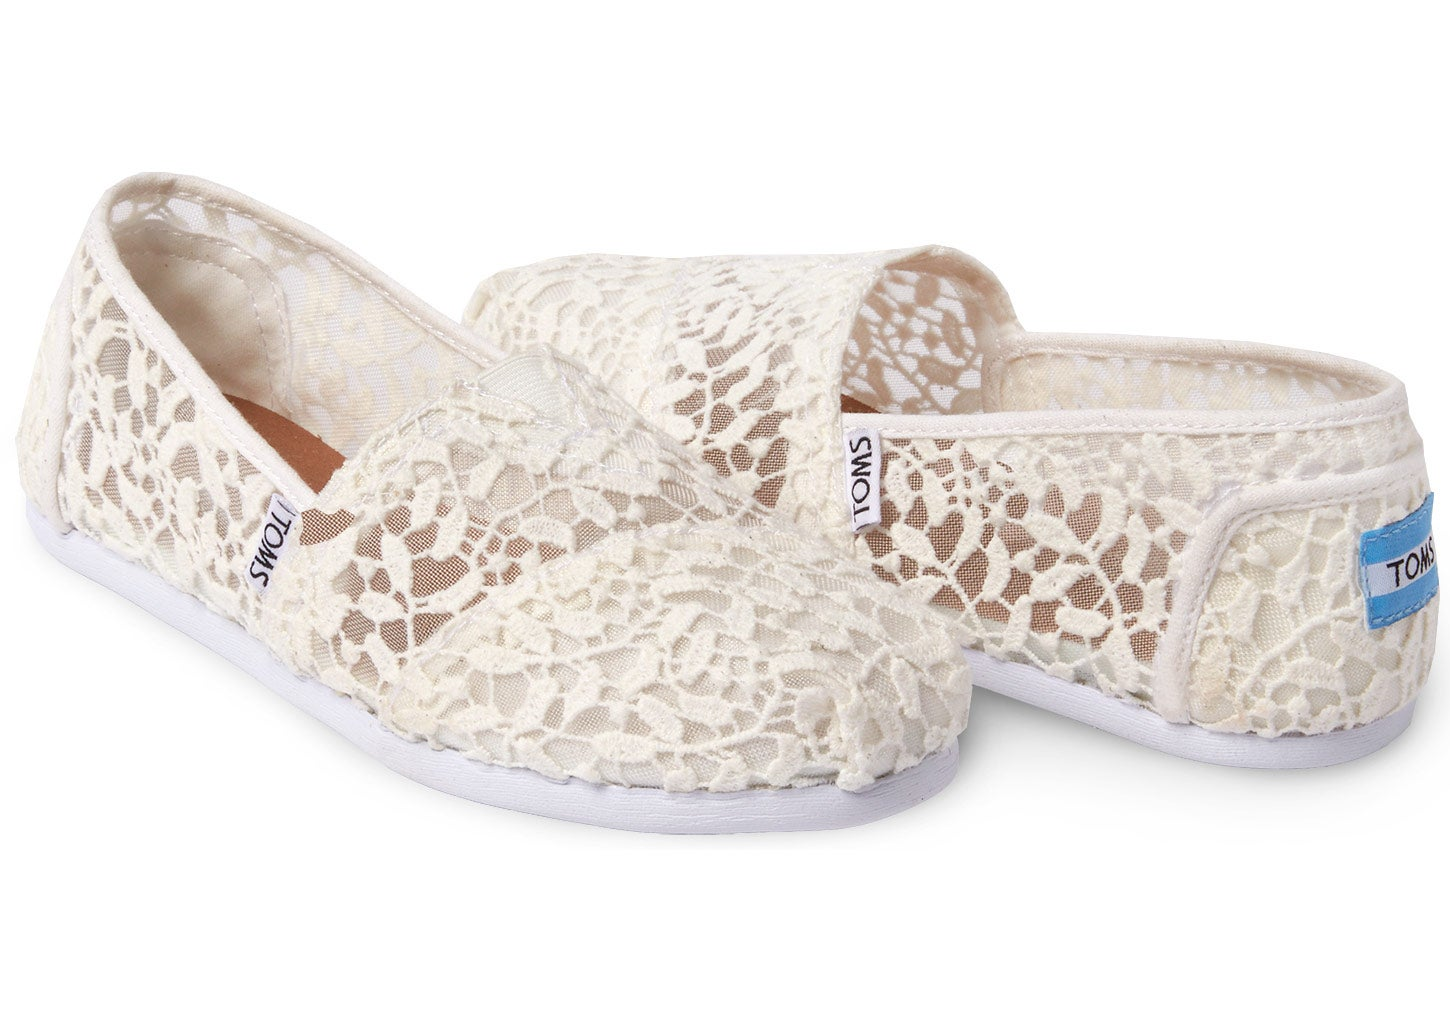 Toms Alpargata Lace Women's Slip On Shoes